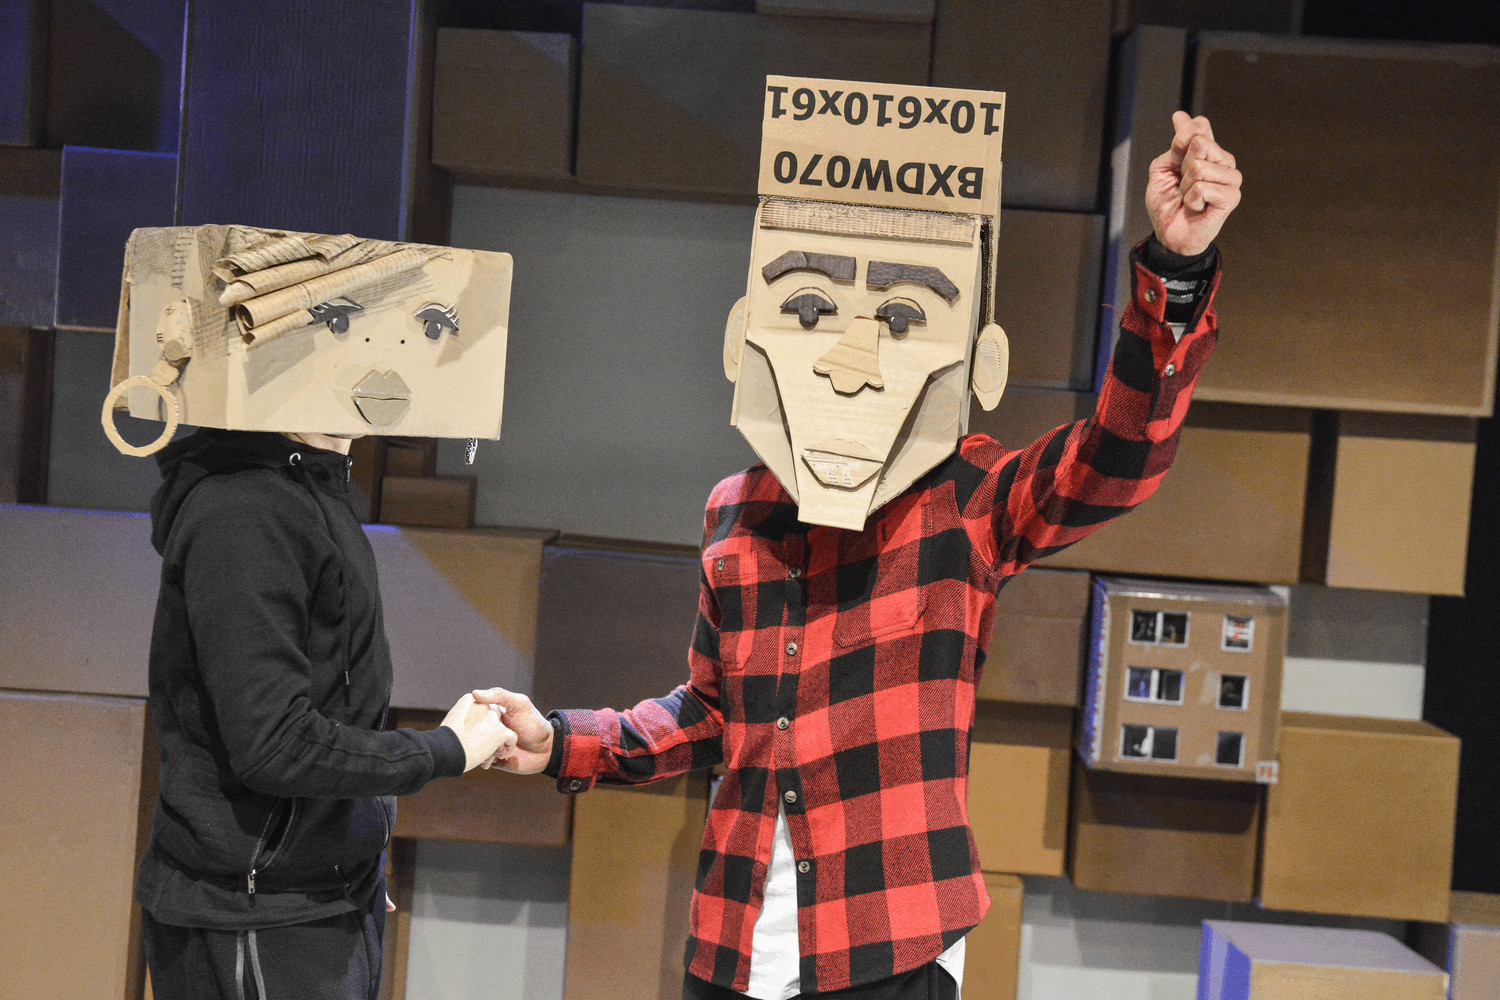 Two people have boxes on their heads created to look like faces. They are holding hands